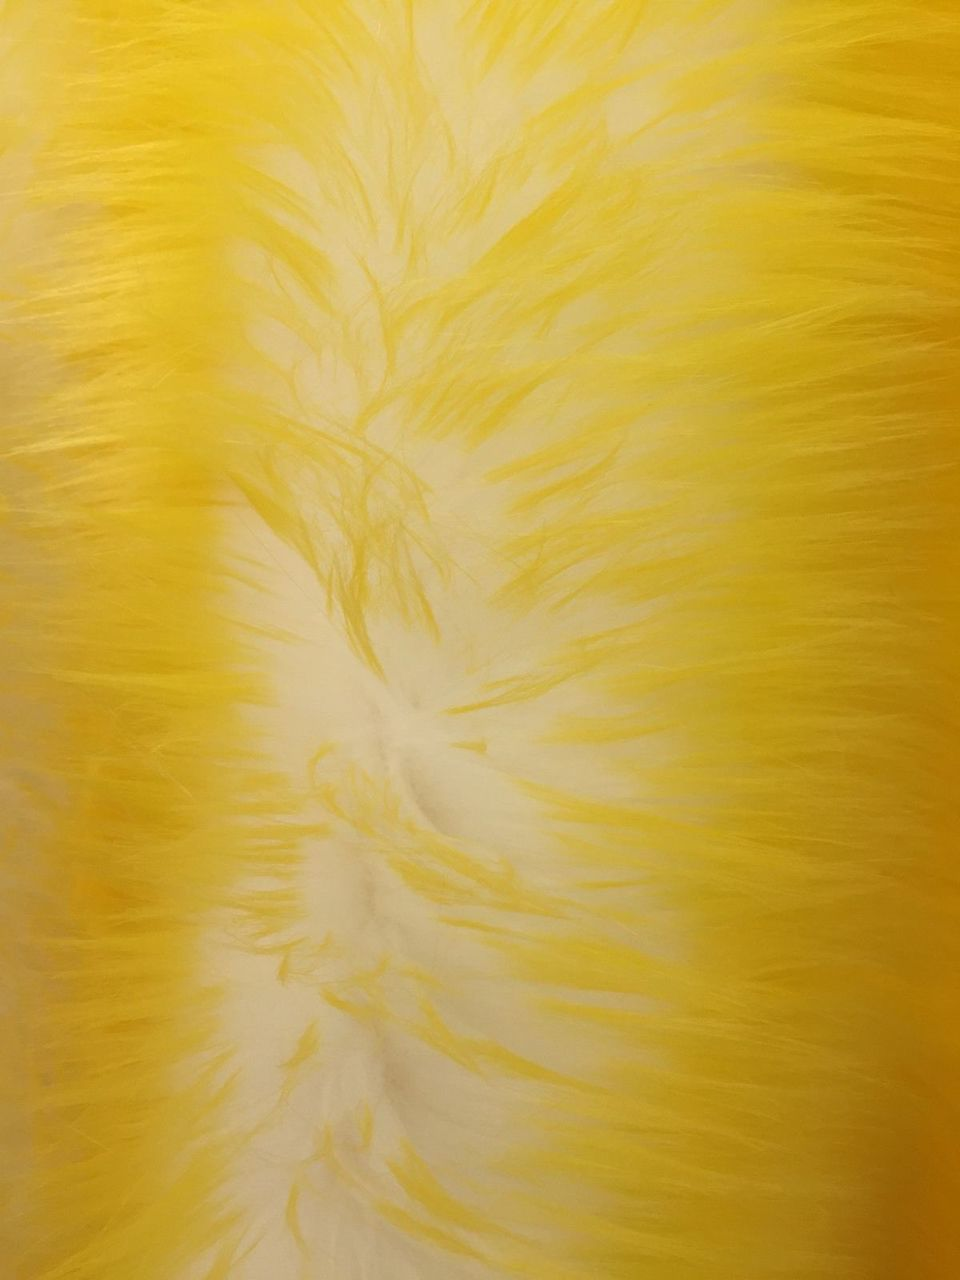 Super Soft Faux Fur Shaggy Twotone Fabric Yellow Offwhite. Sold By The Yard - KINGDOM OF FABRICS